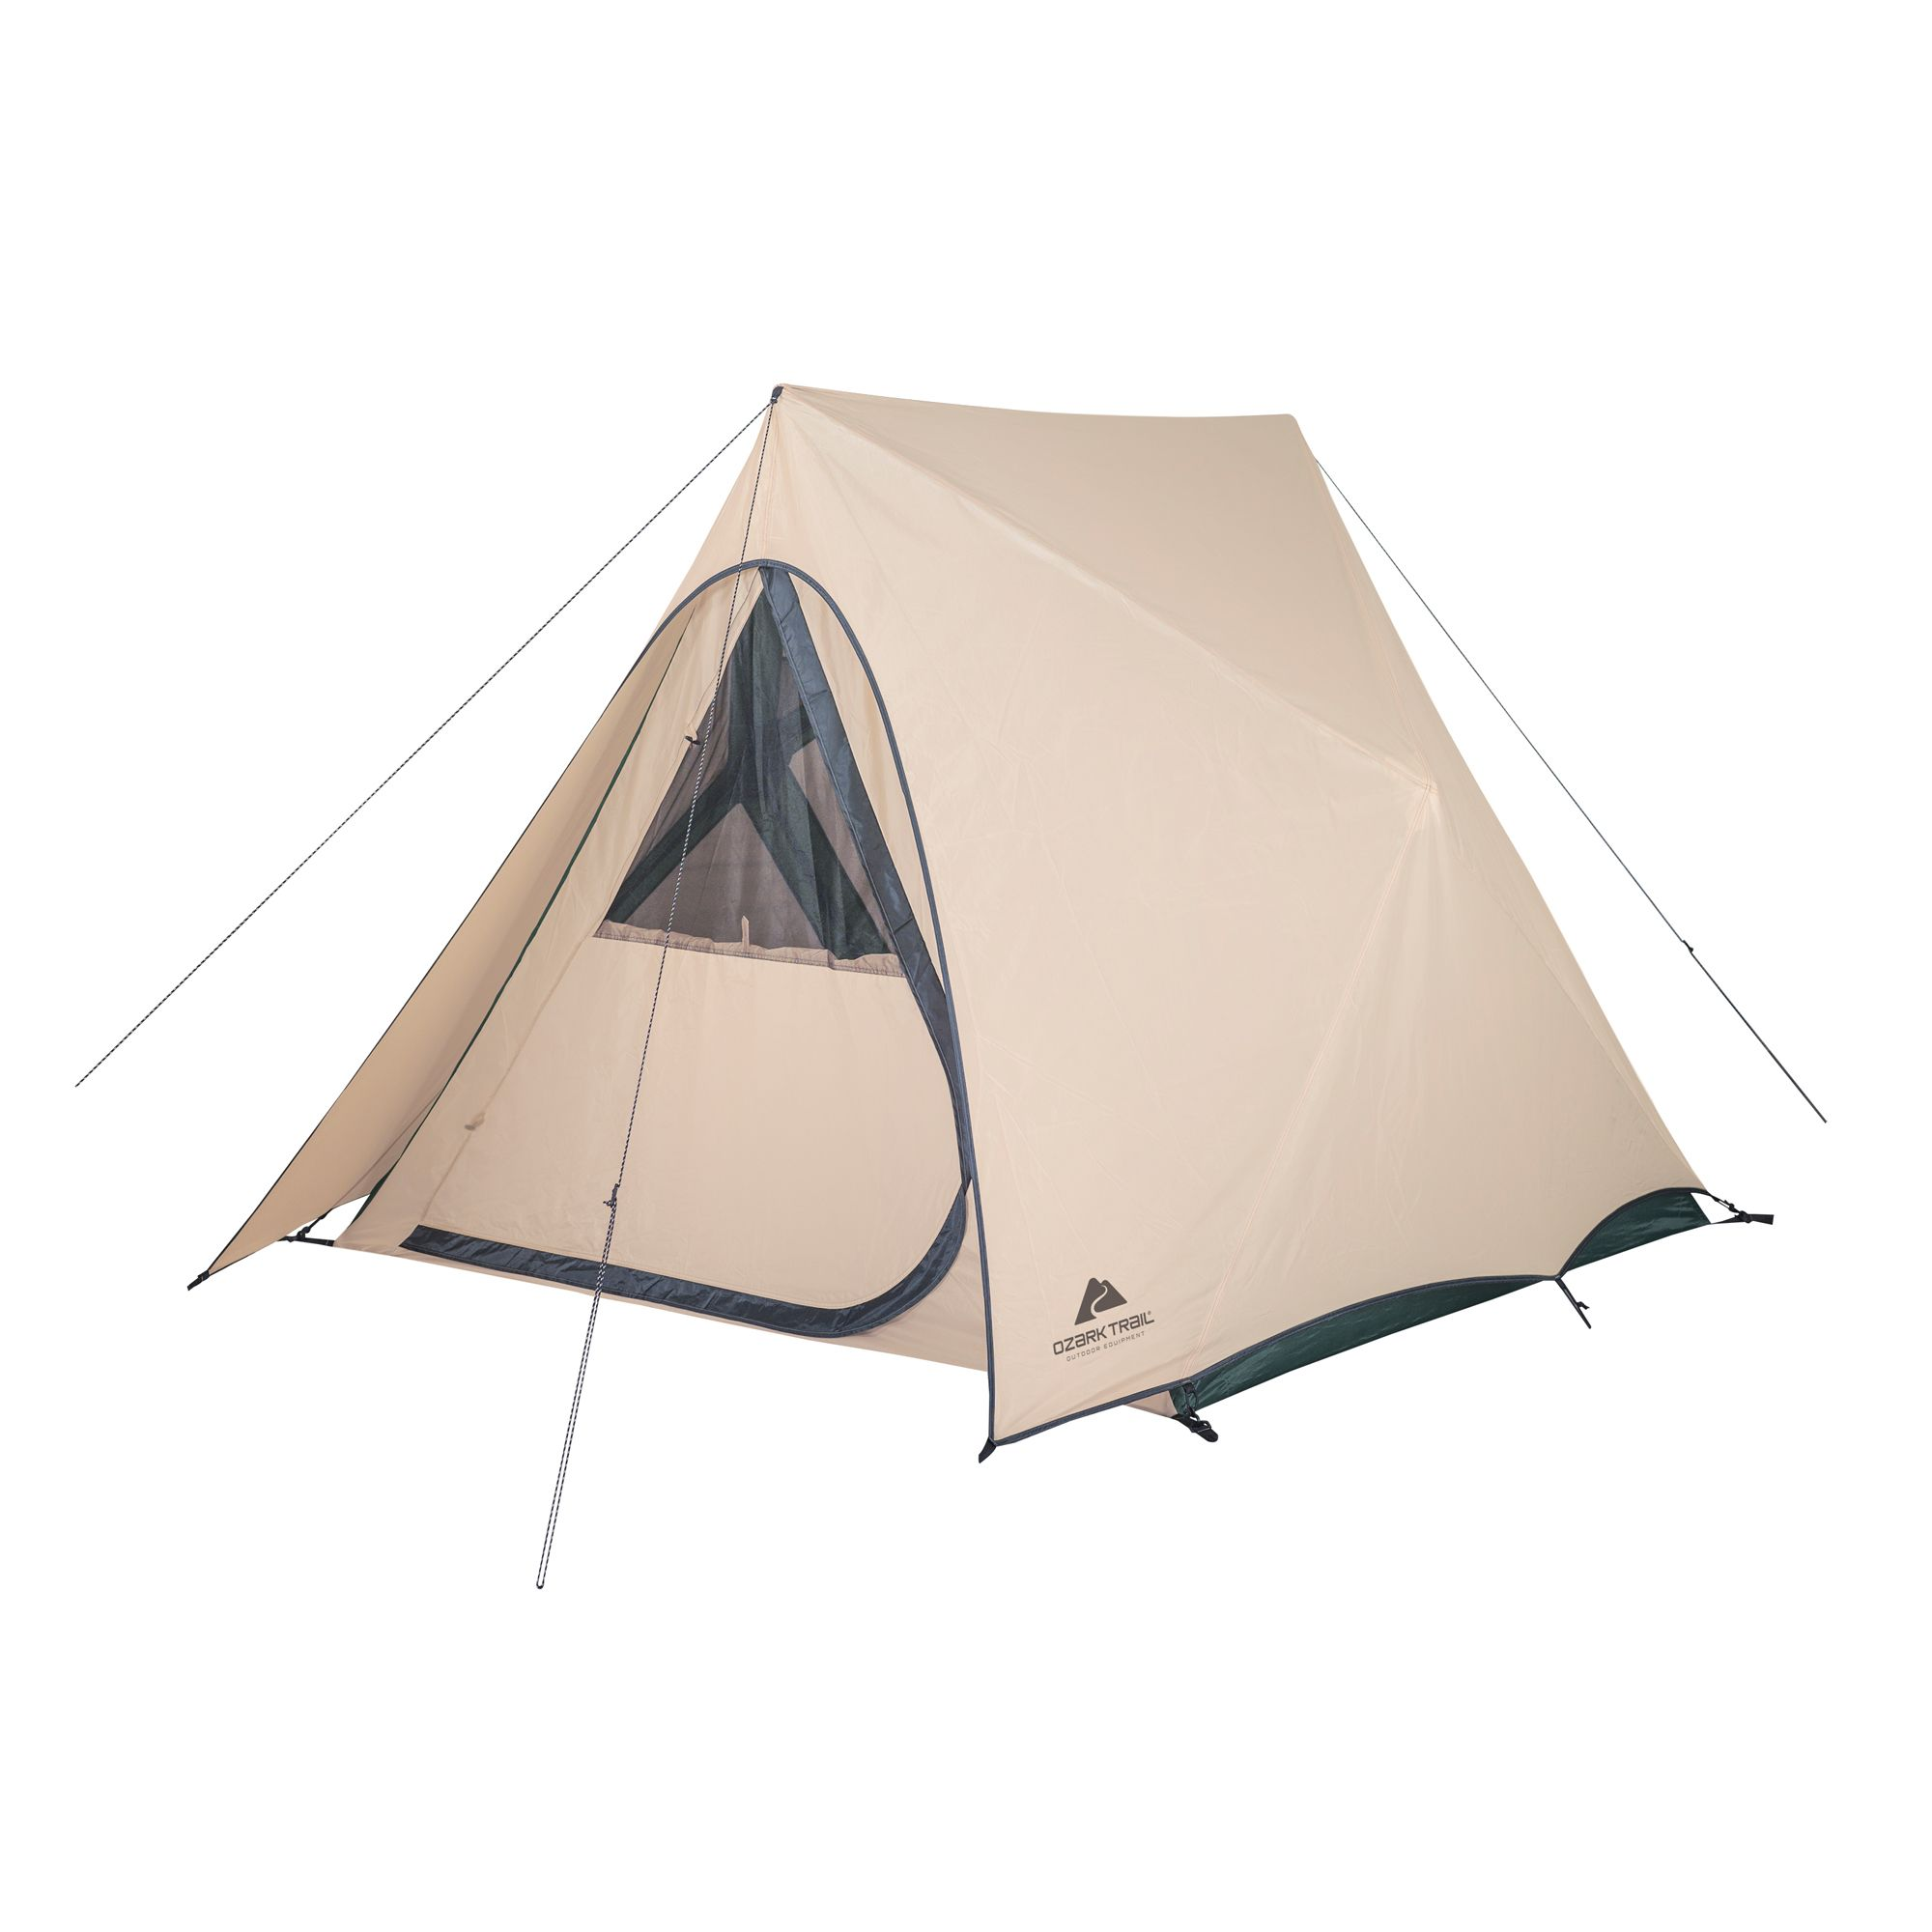 Ozark Trail 7-Person Teepee Tent without Center Pole Obstruction for Camping